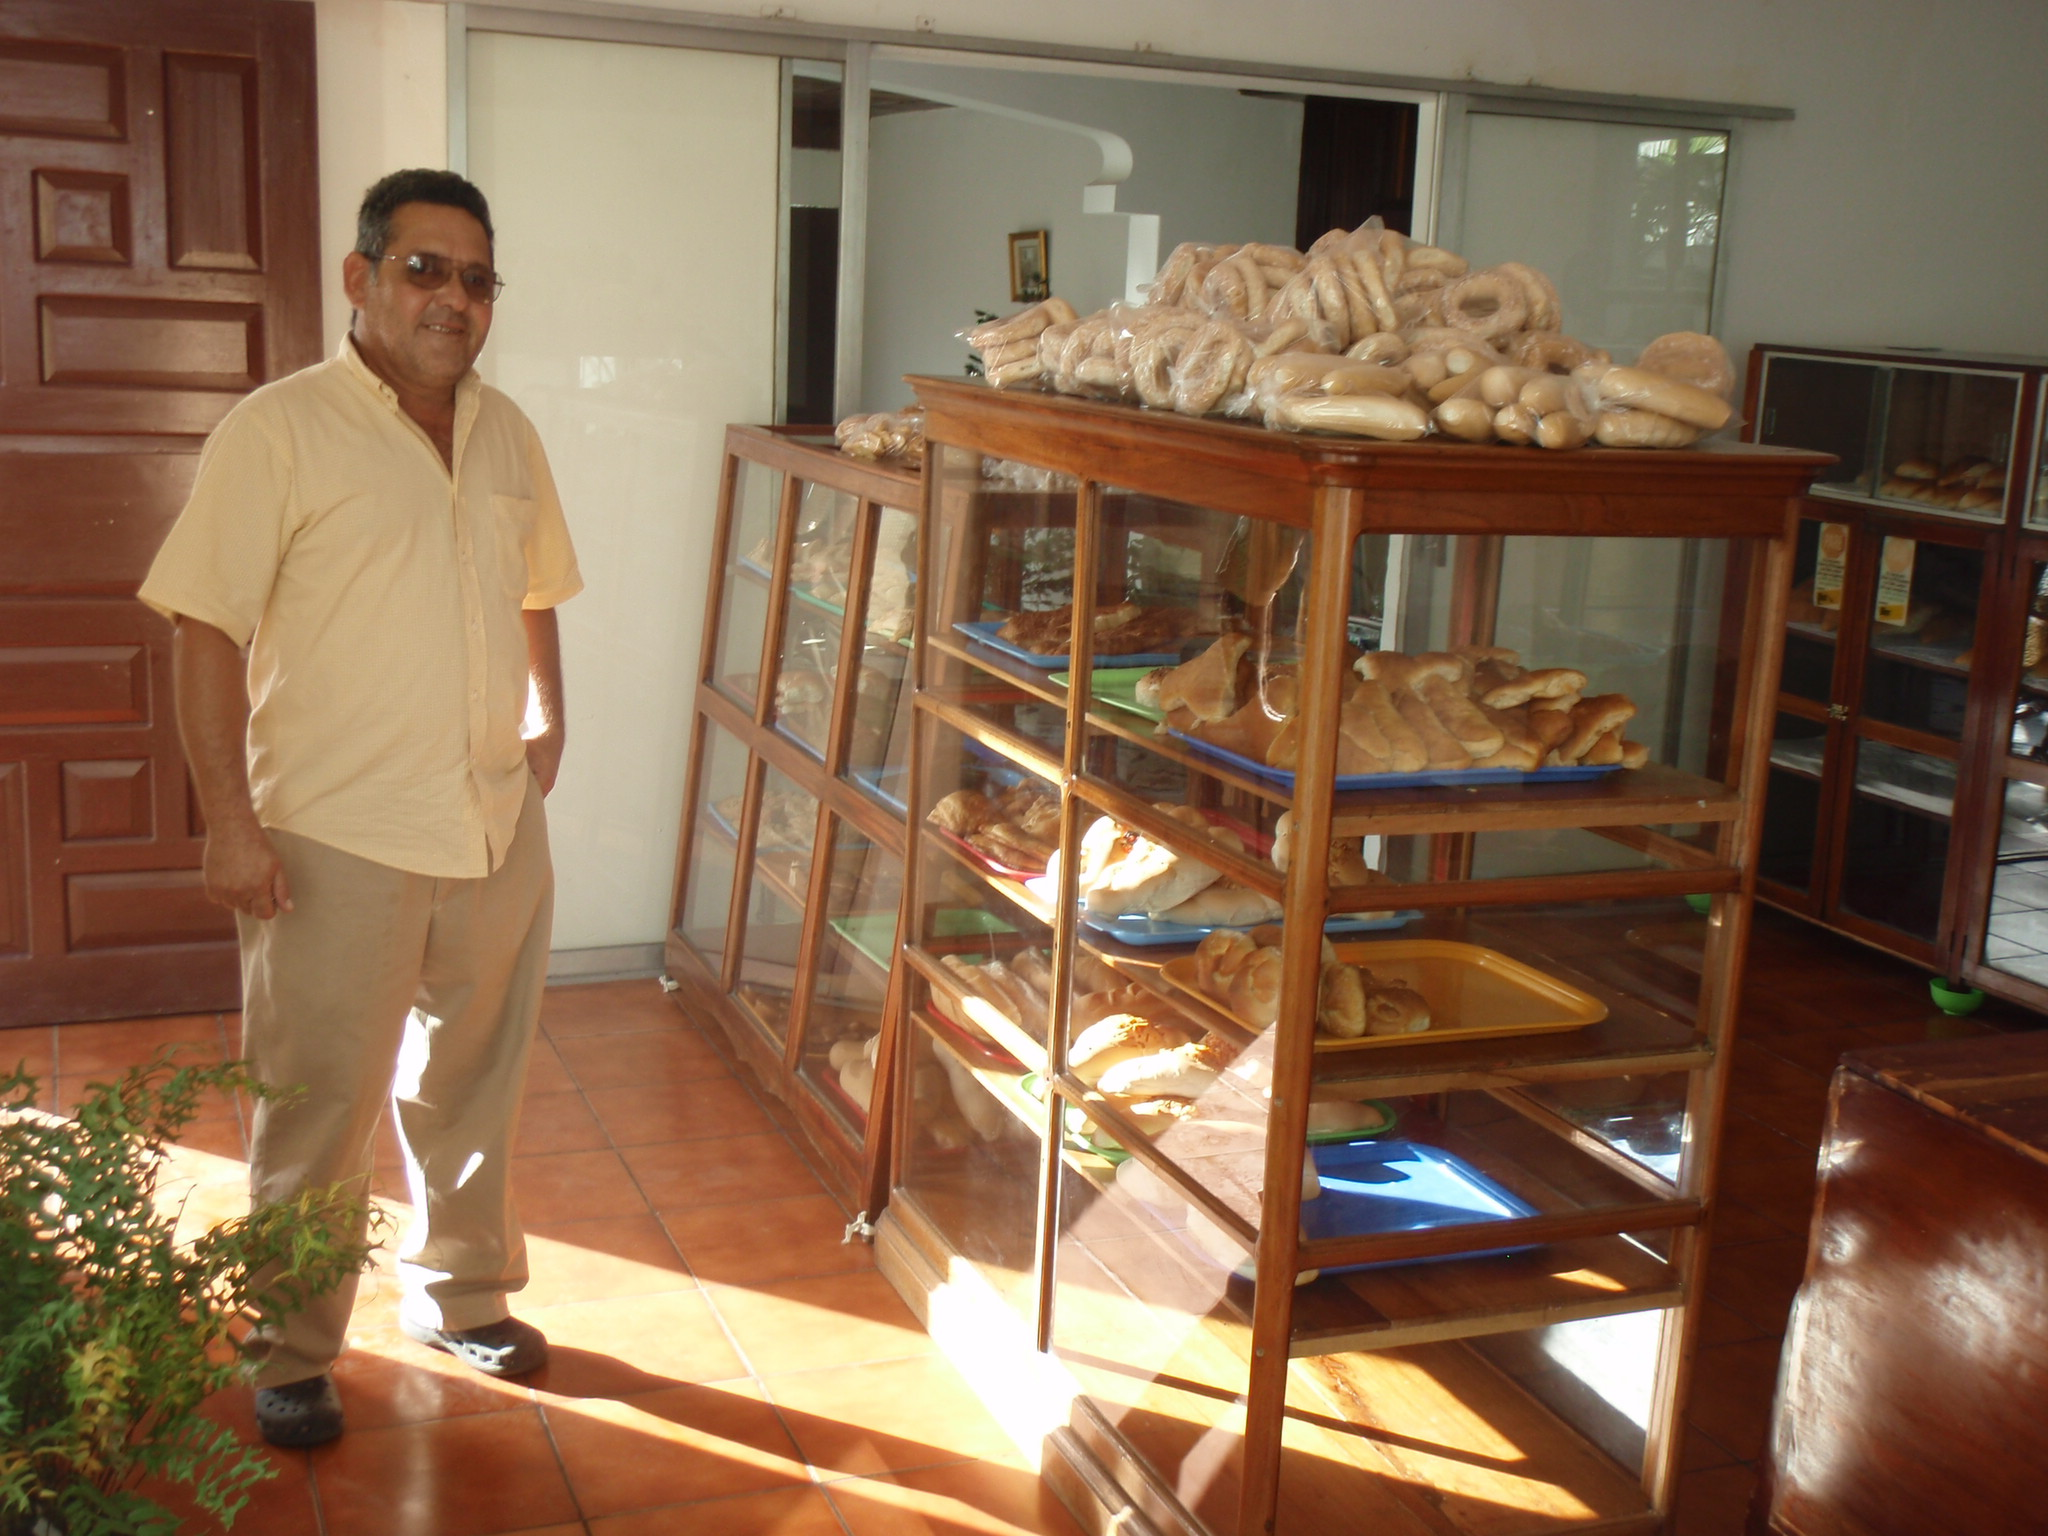 Ivan running the bakery store who invited me into his home for coffee and conversation